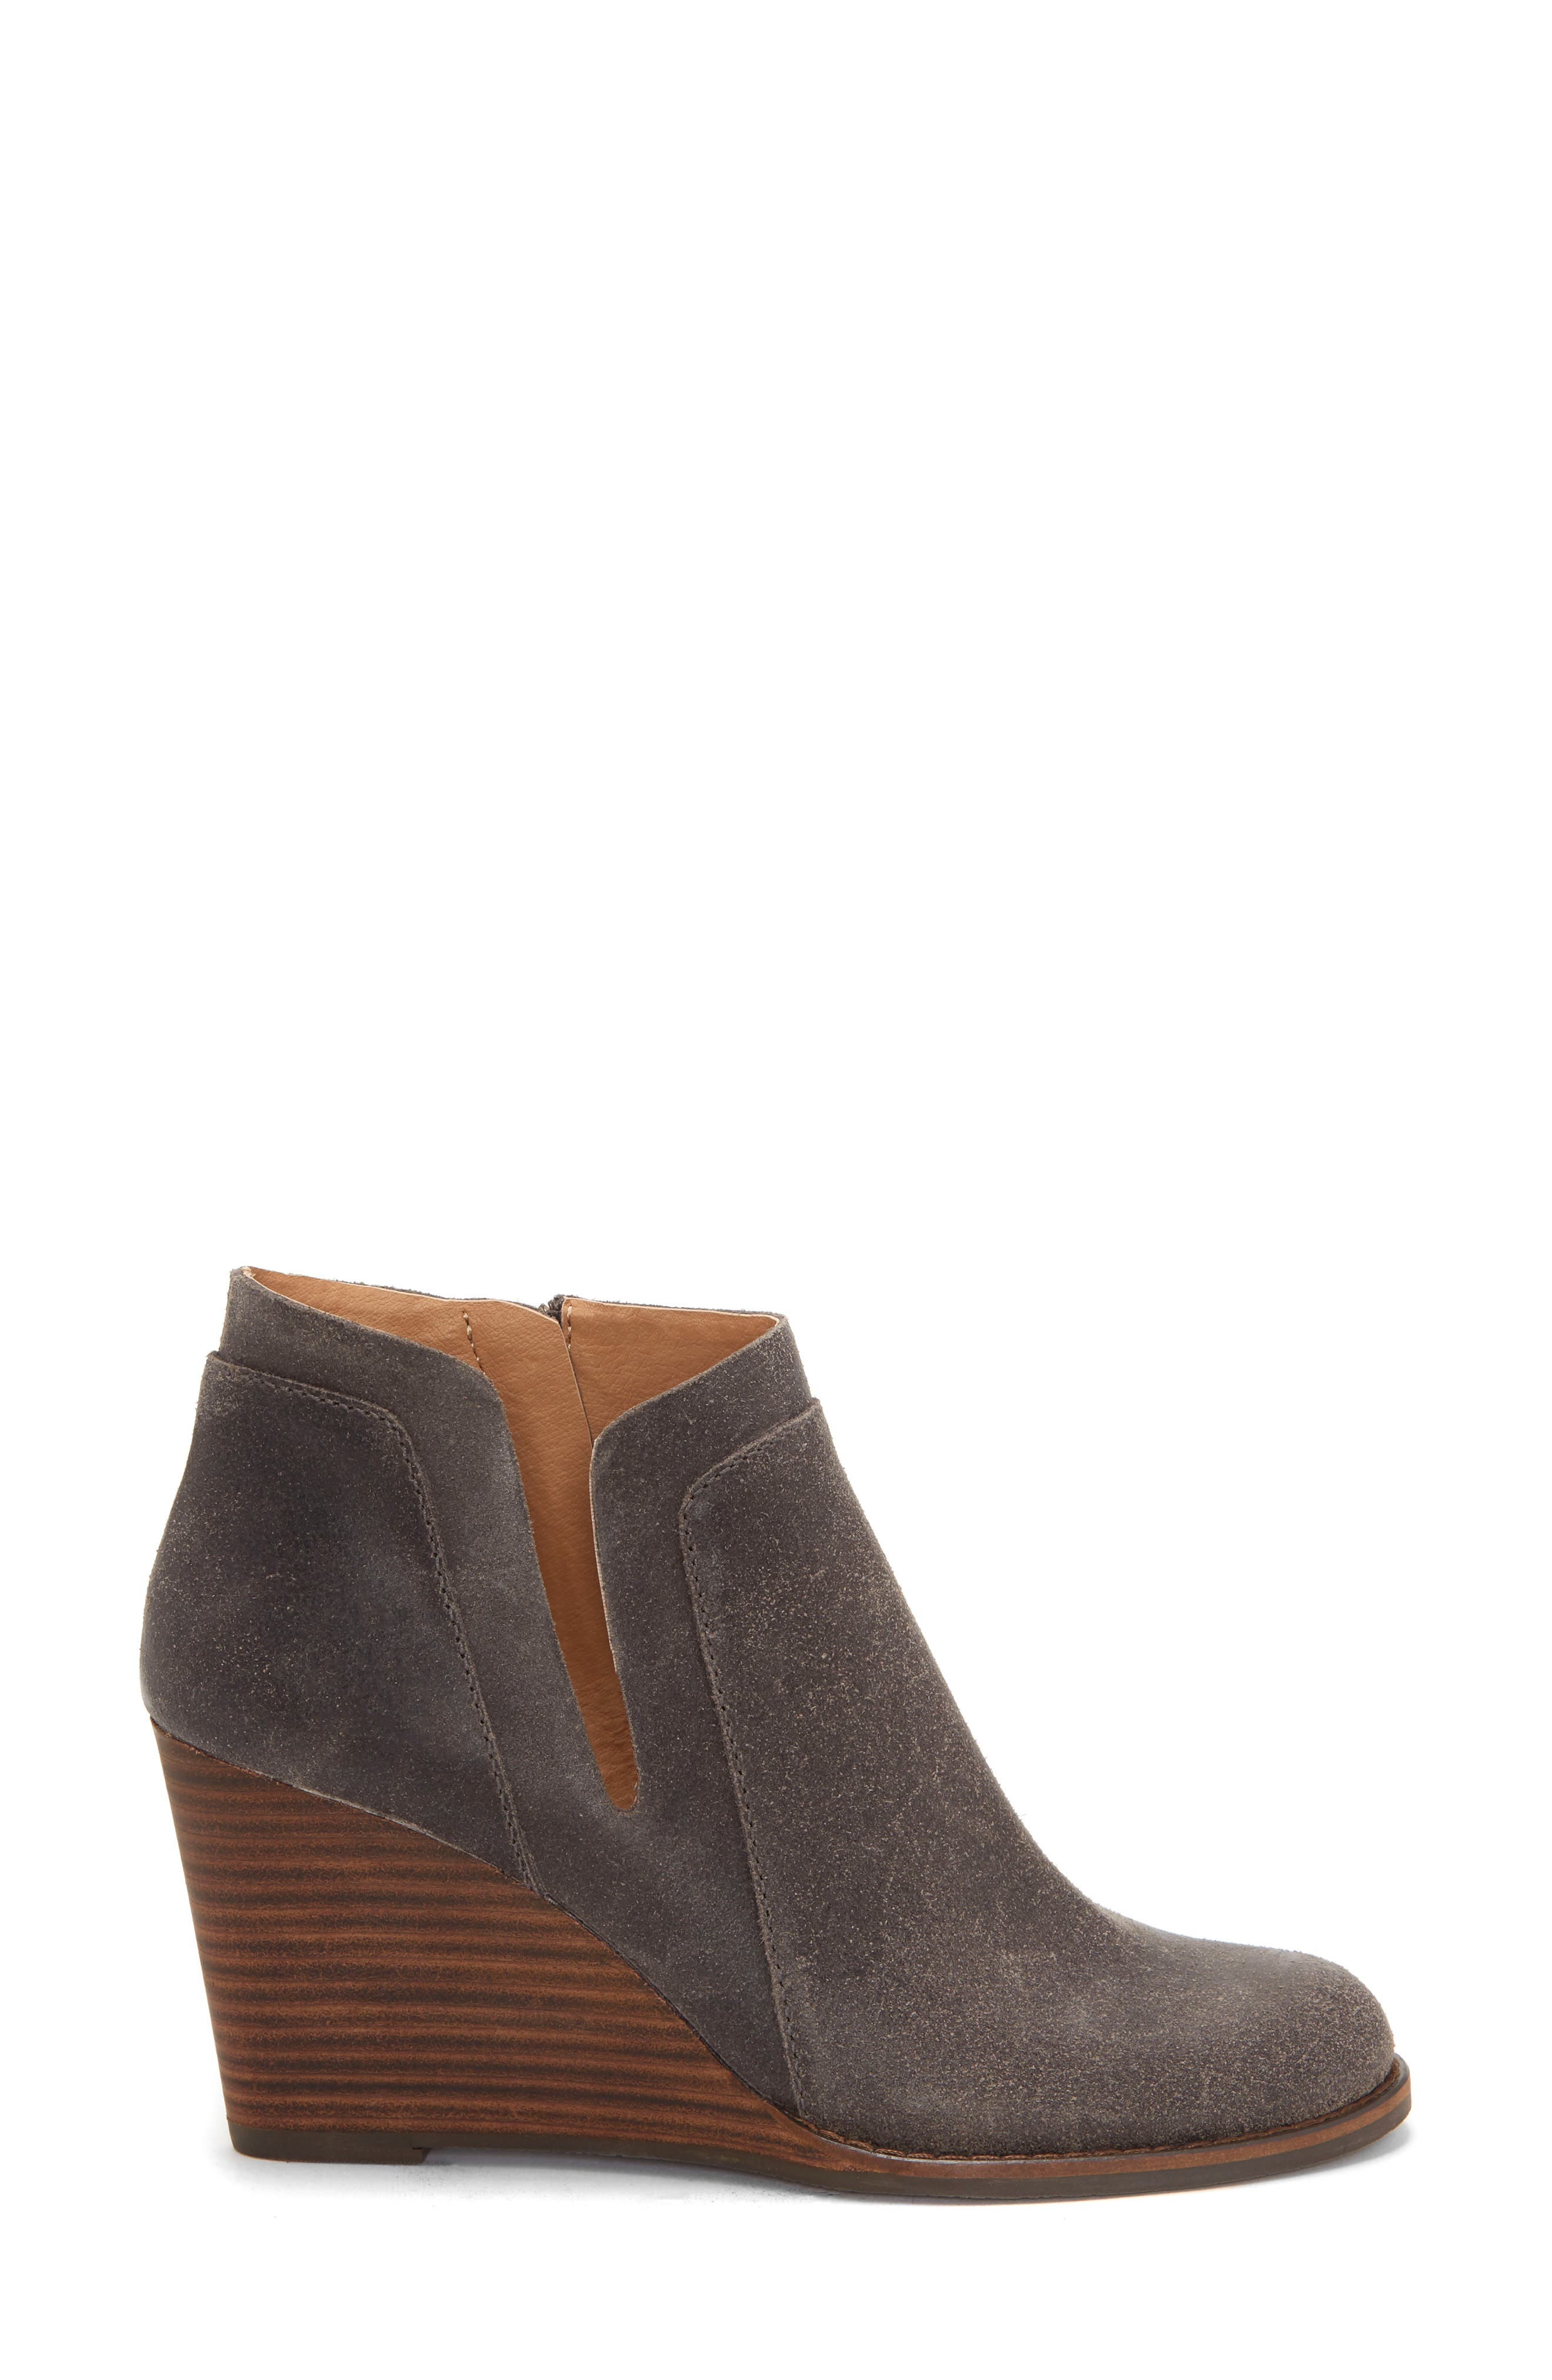 Yabba Wedge Bootie,                             Alternate thumbnail 3, color,                             STORM NUBUCK